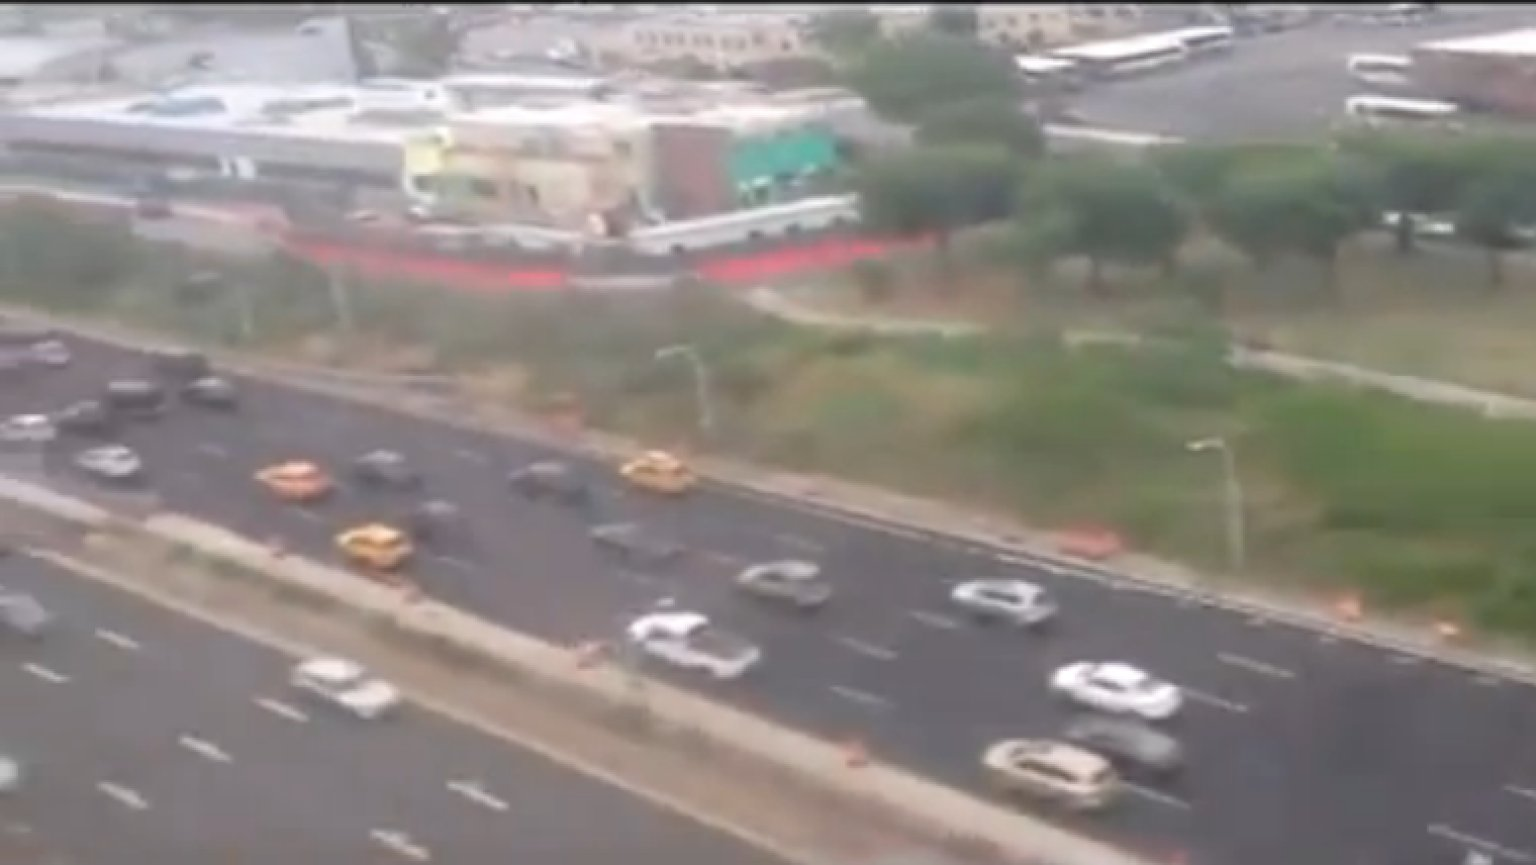 LaGuardia Southwest Airlines Crash Landing Caught On Video | HuffPost